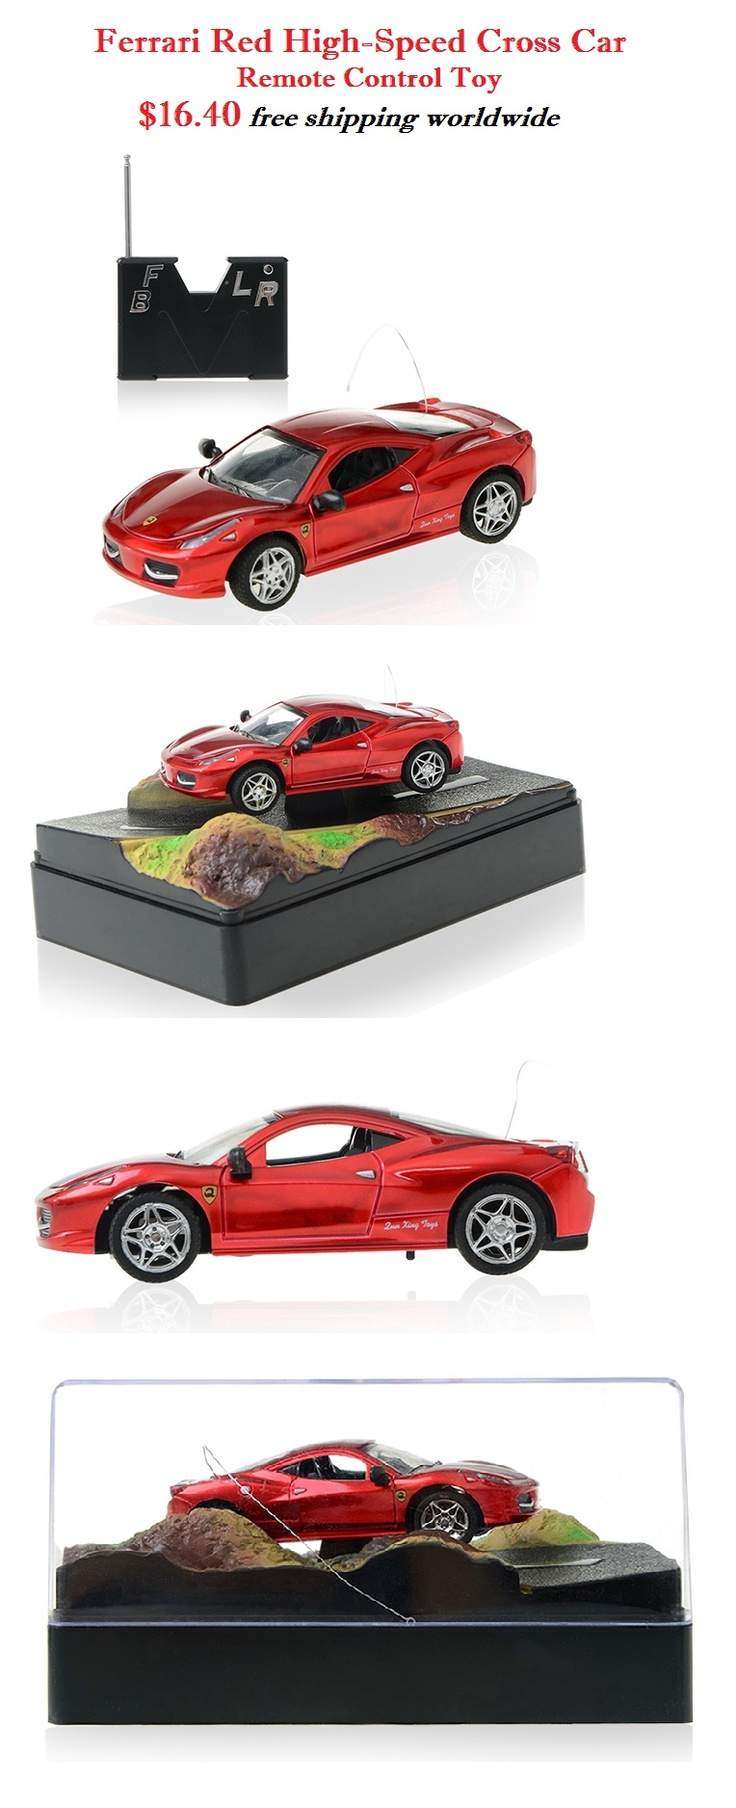 Ferrari Brand Red High-Speed Cross Car - Remote Control #ferrari #brand #speed #cross #car #remote #control $16.40